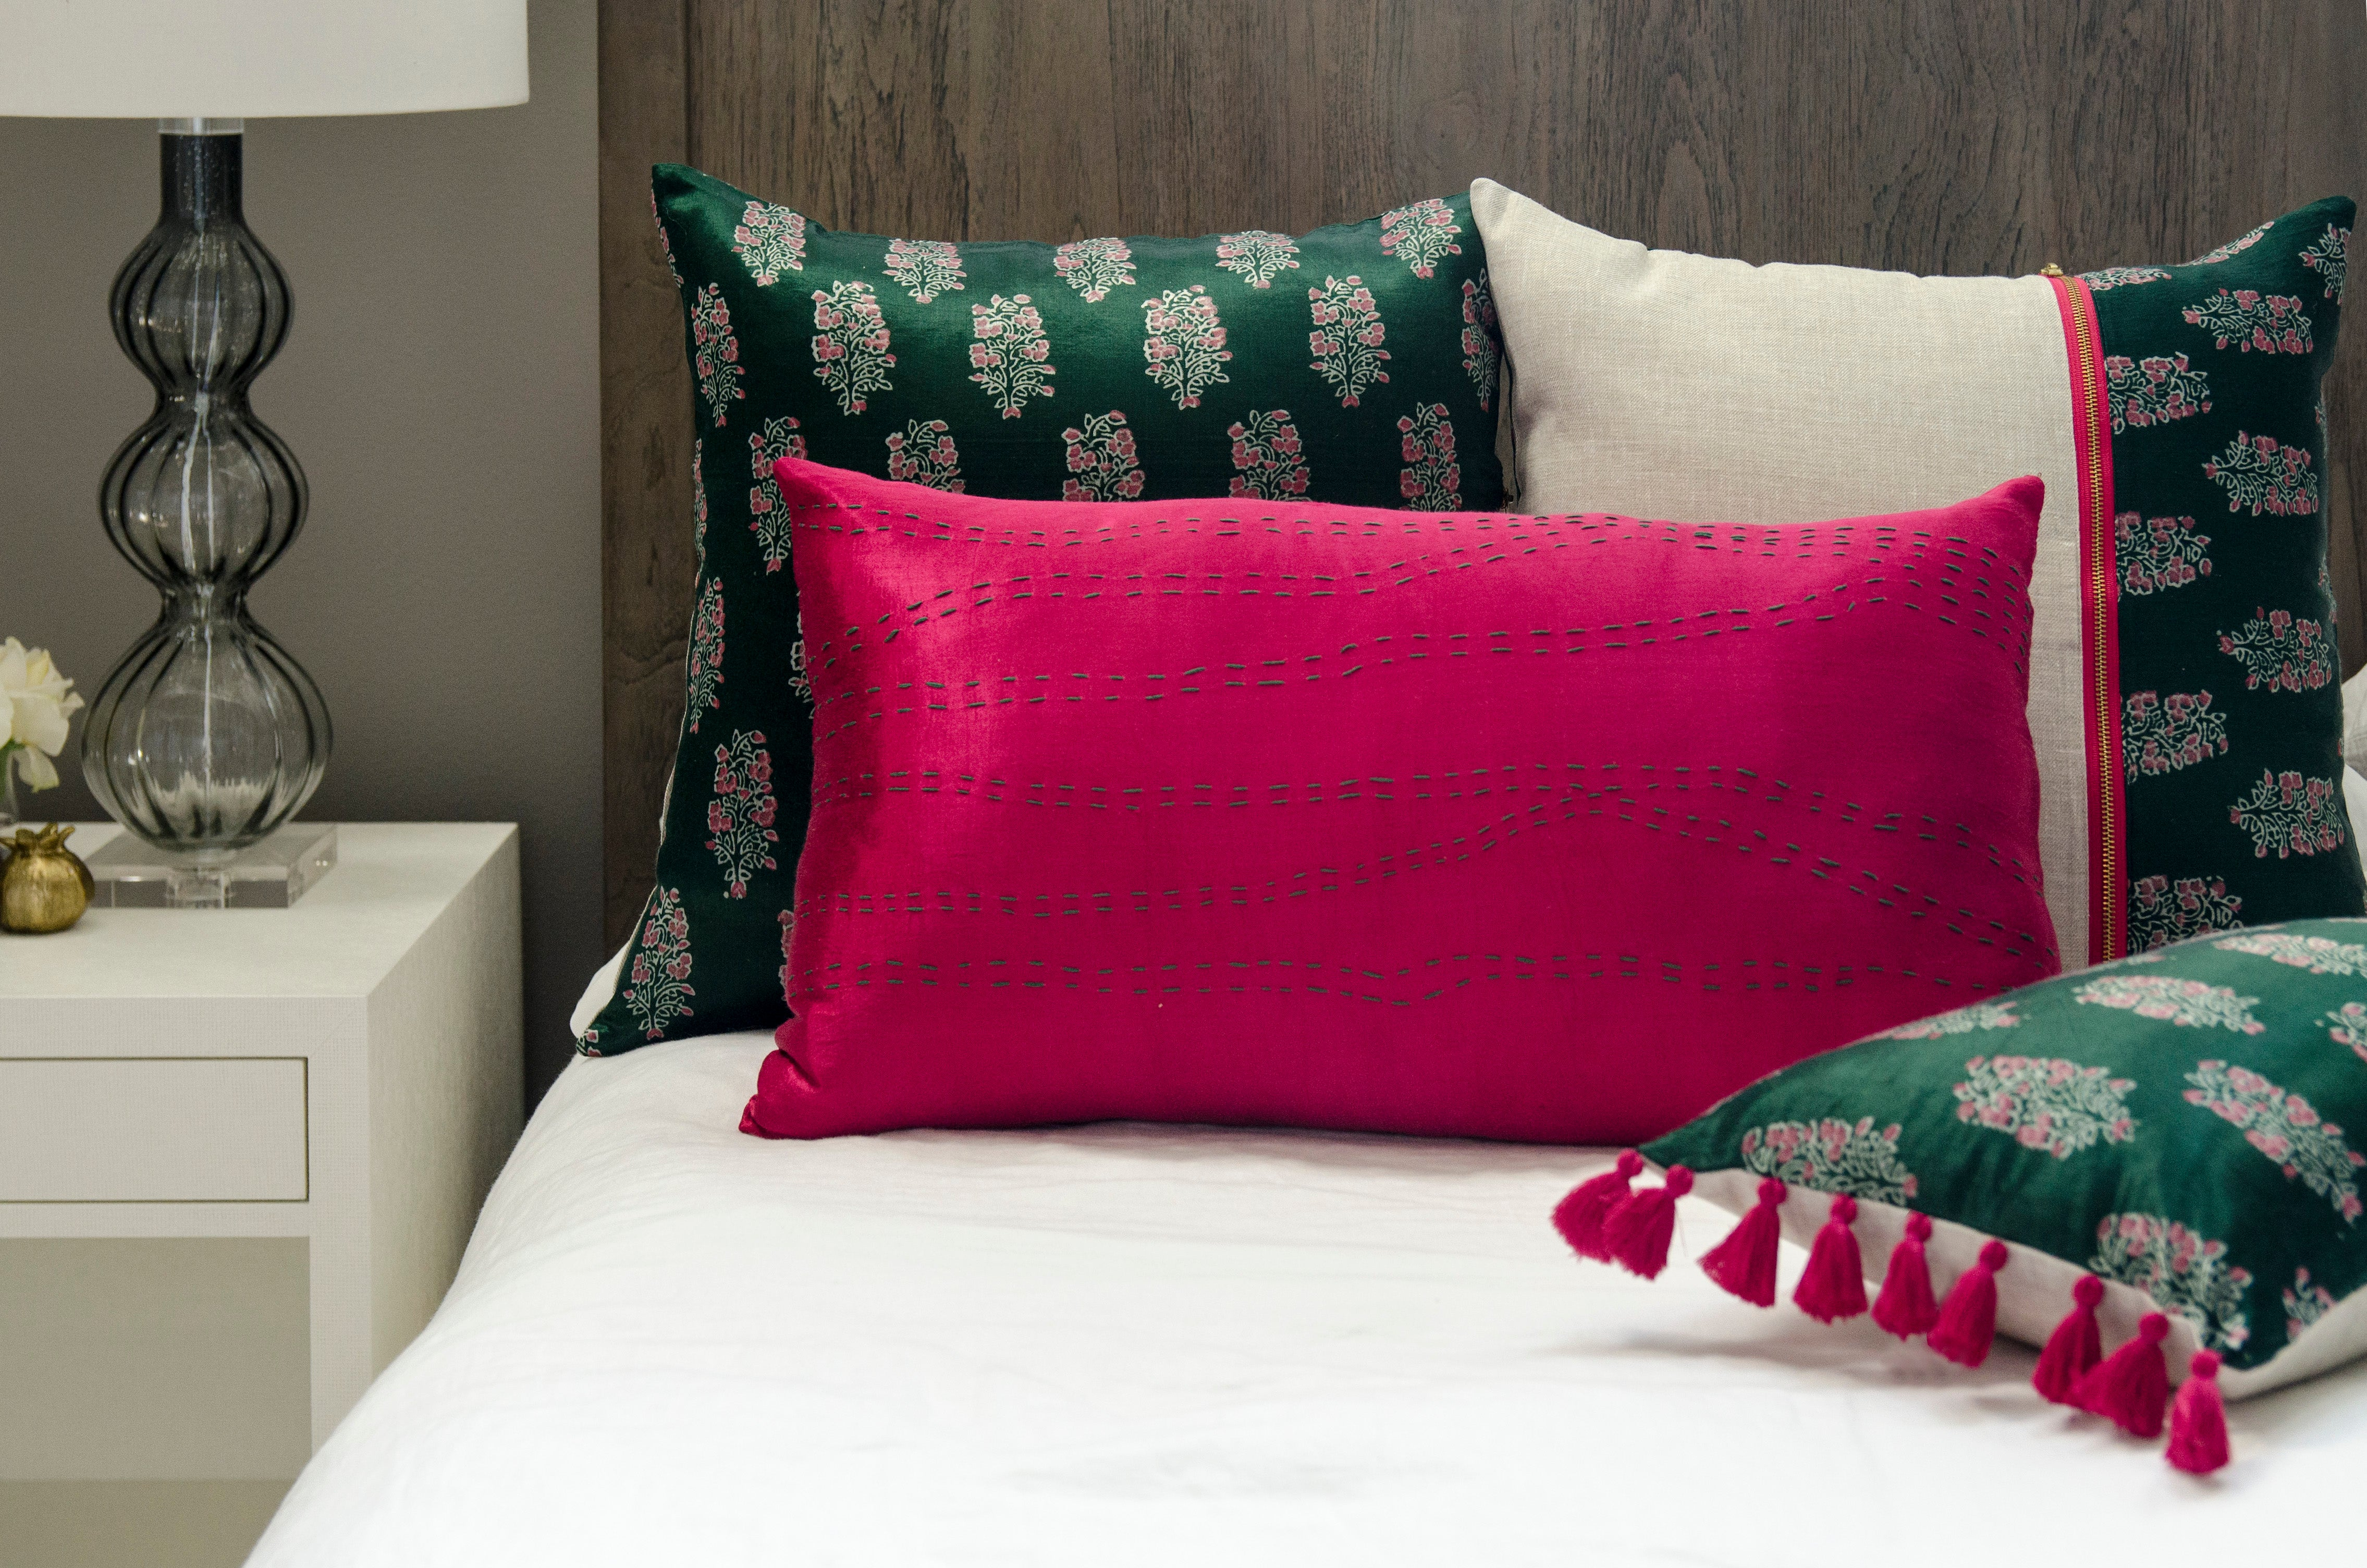 Green and pink decorative throw lumbar pillow with tassels. Handmade and block printed on a silk-cotton fabric by artisans in India. Designed for the well-travelled, modern consumer.